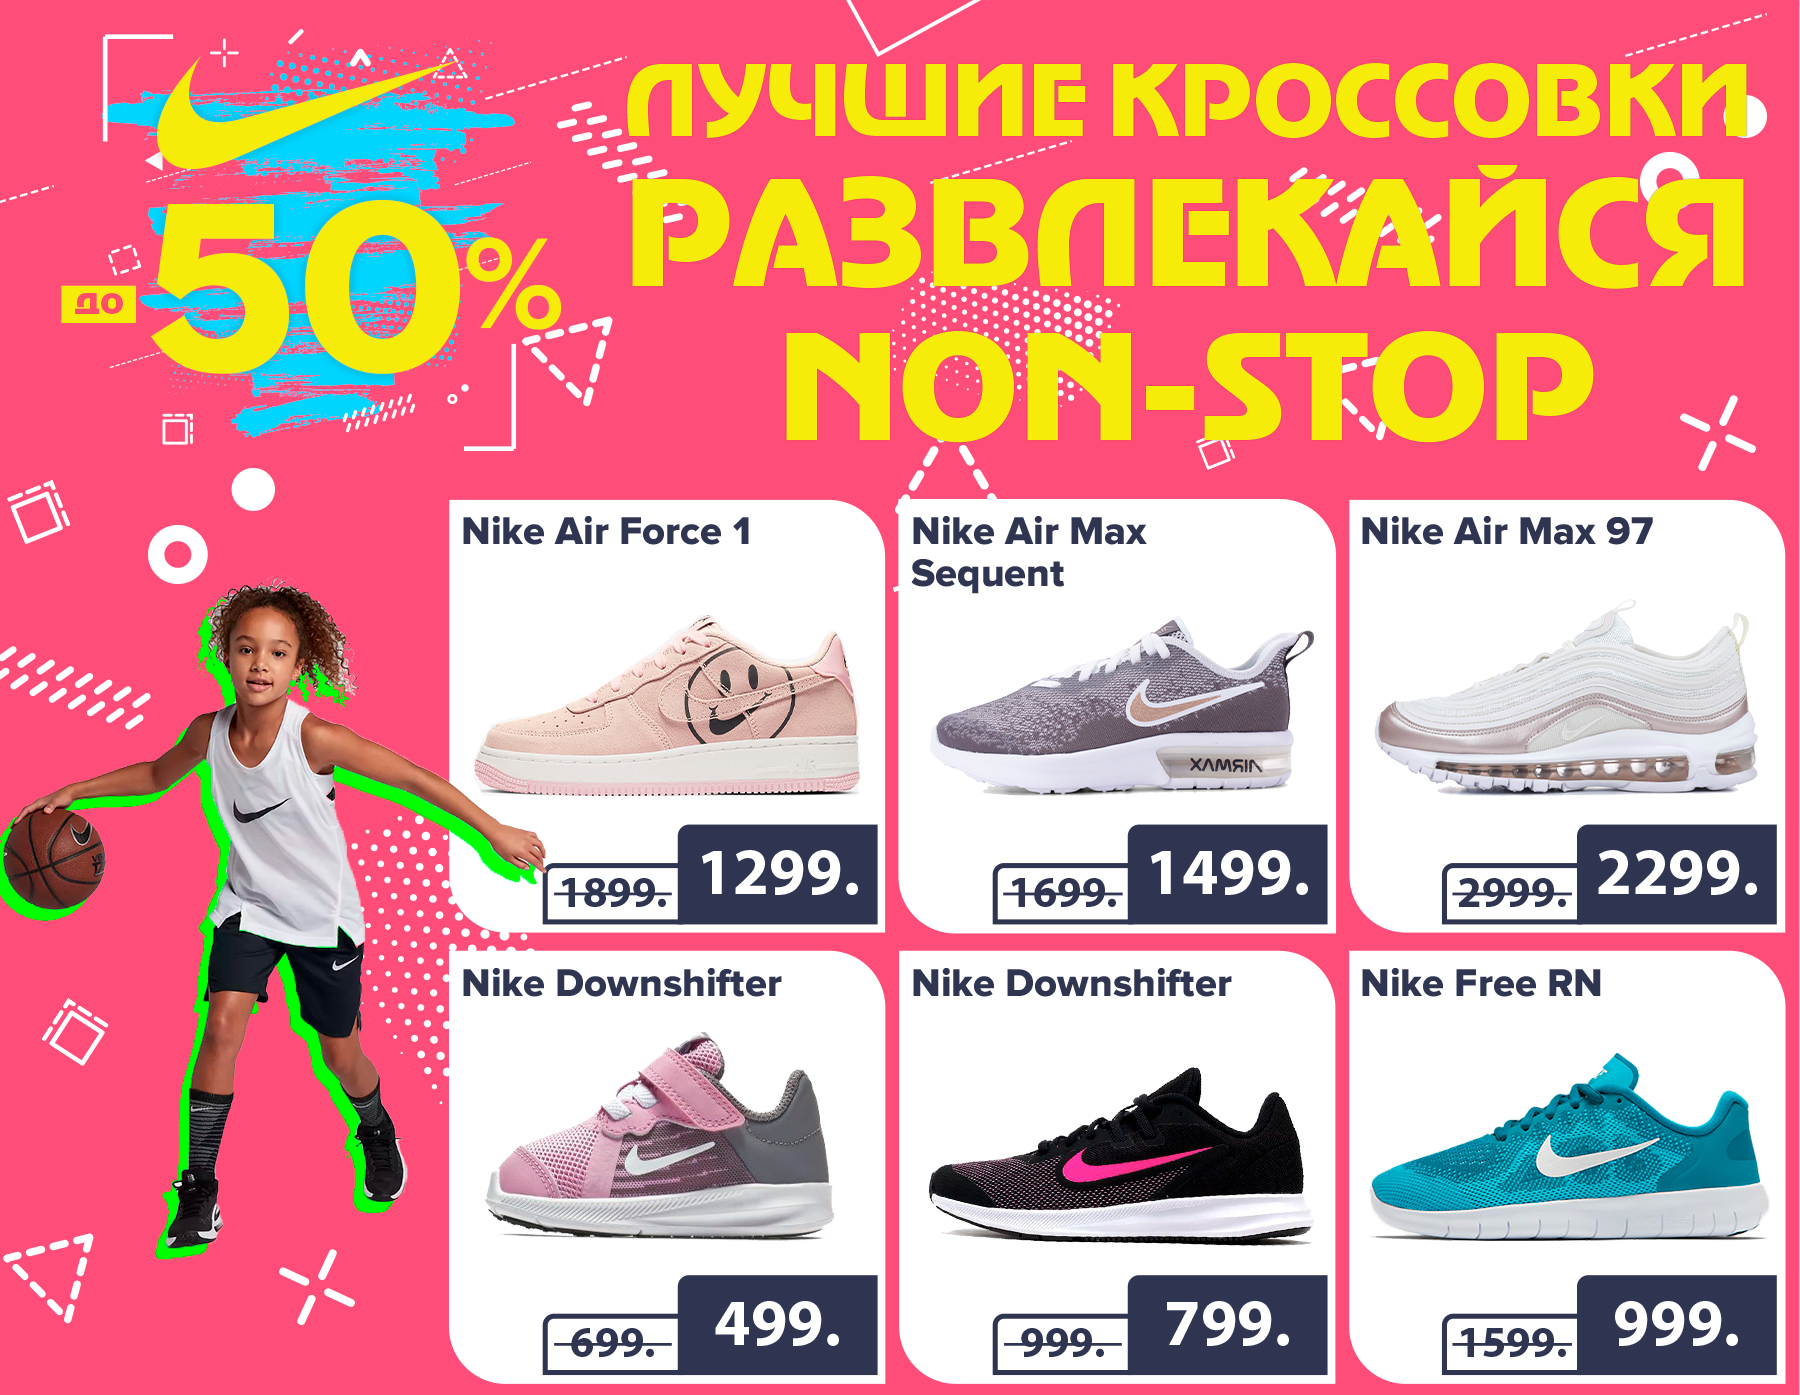 nike copii, nike kids, nike grand hall, nike moldova